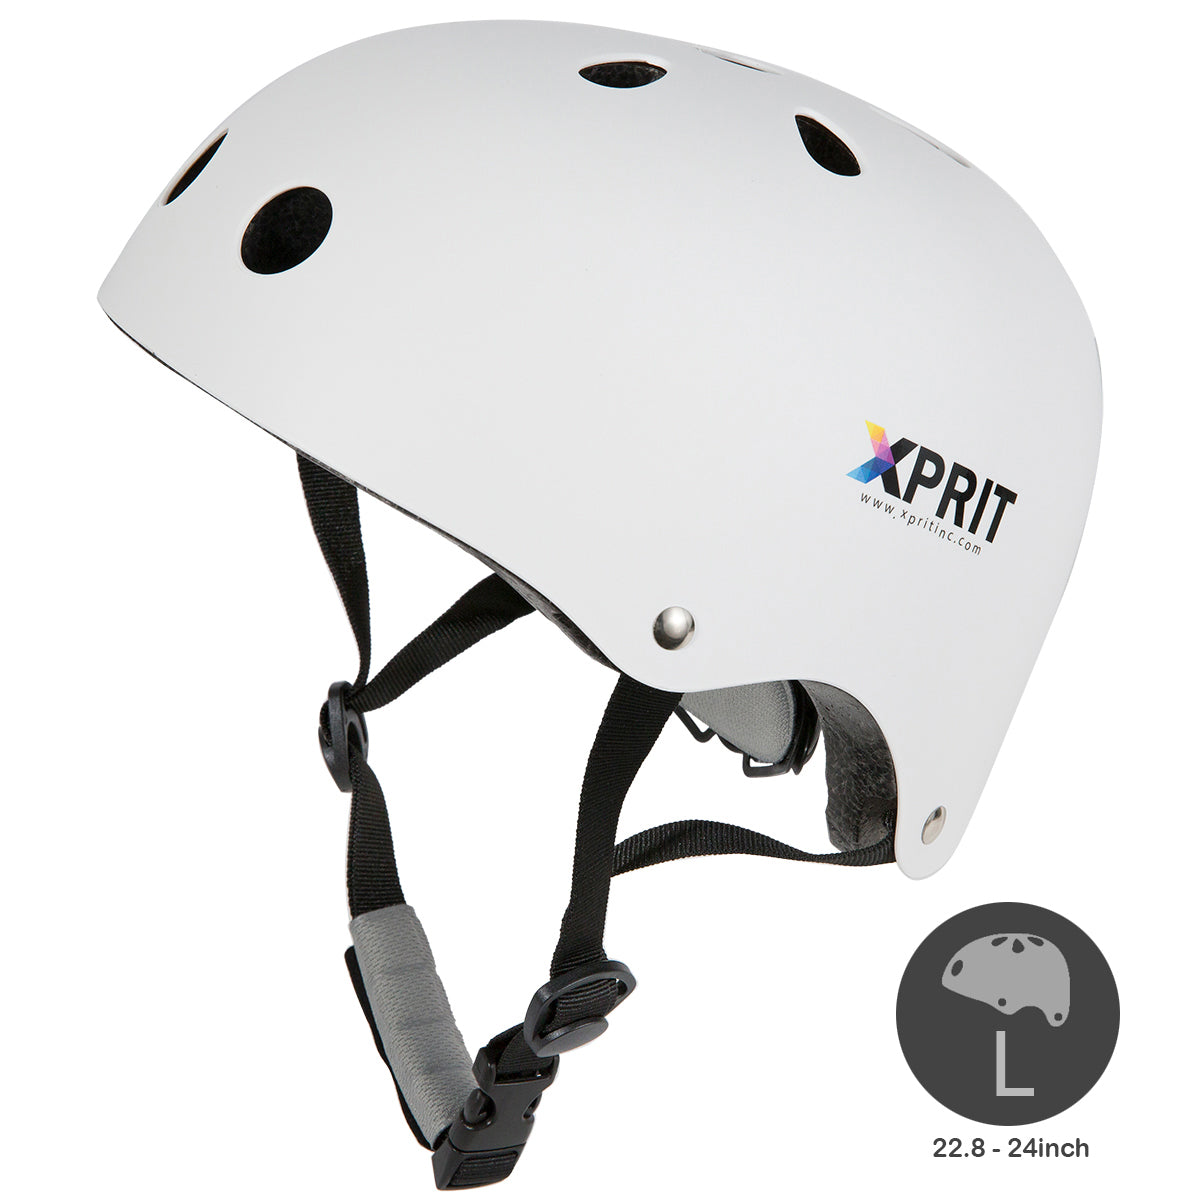 XPRIT Kids/Adults Protection Helmet For Scooter, Hoverboard, Skateboard and Bicycle. White Large